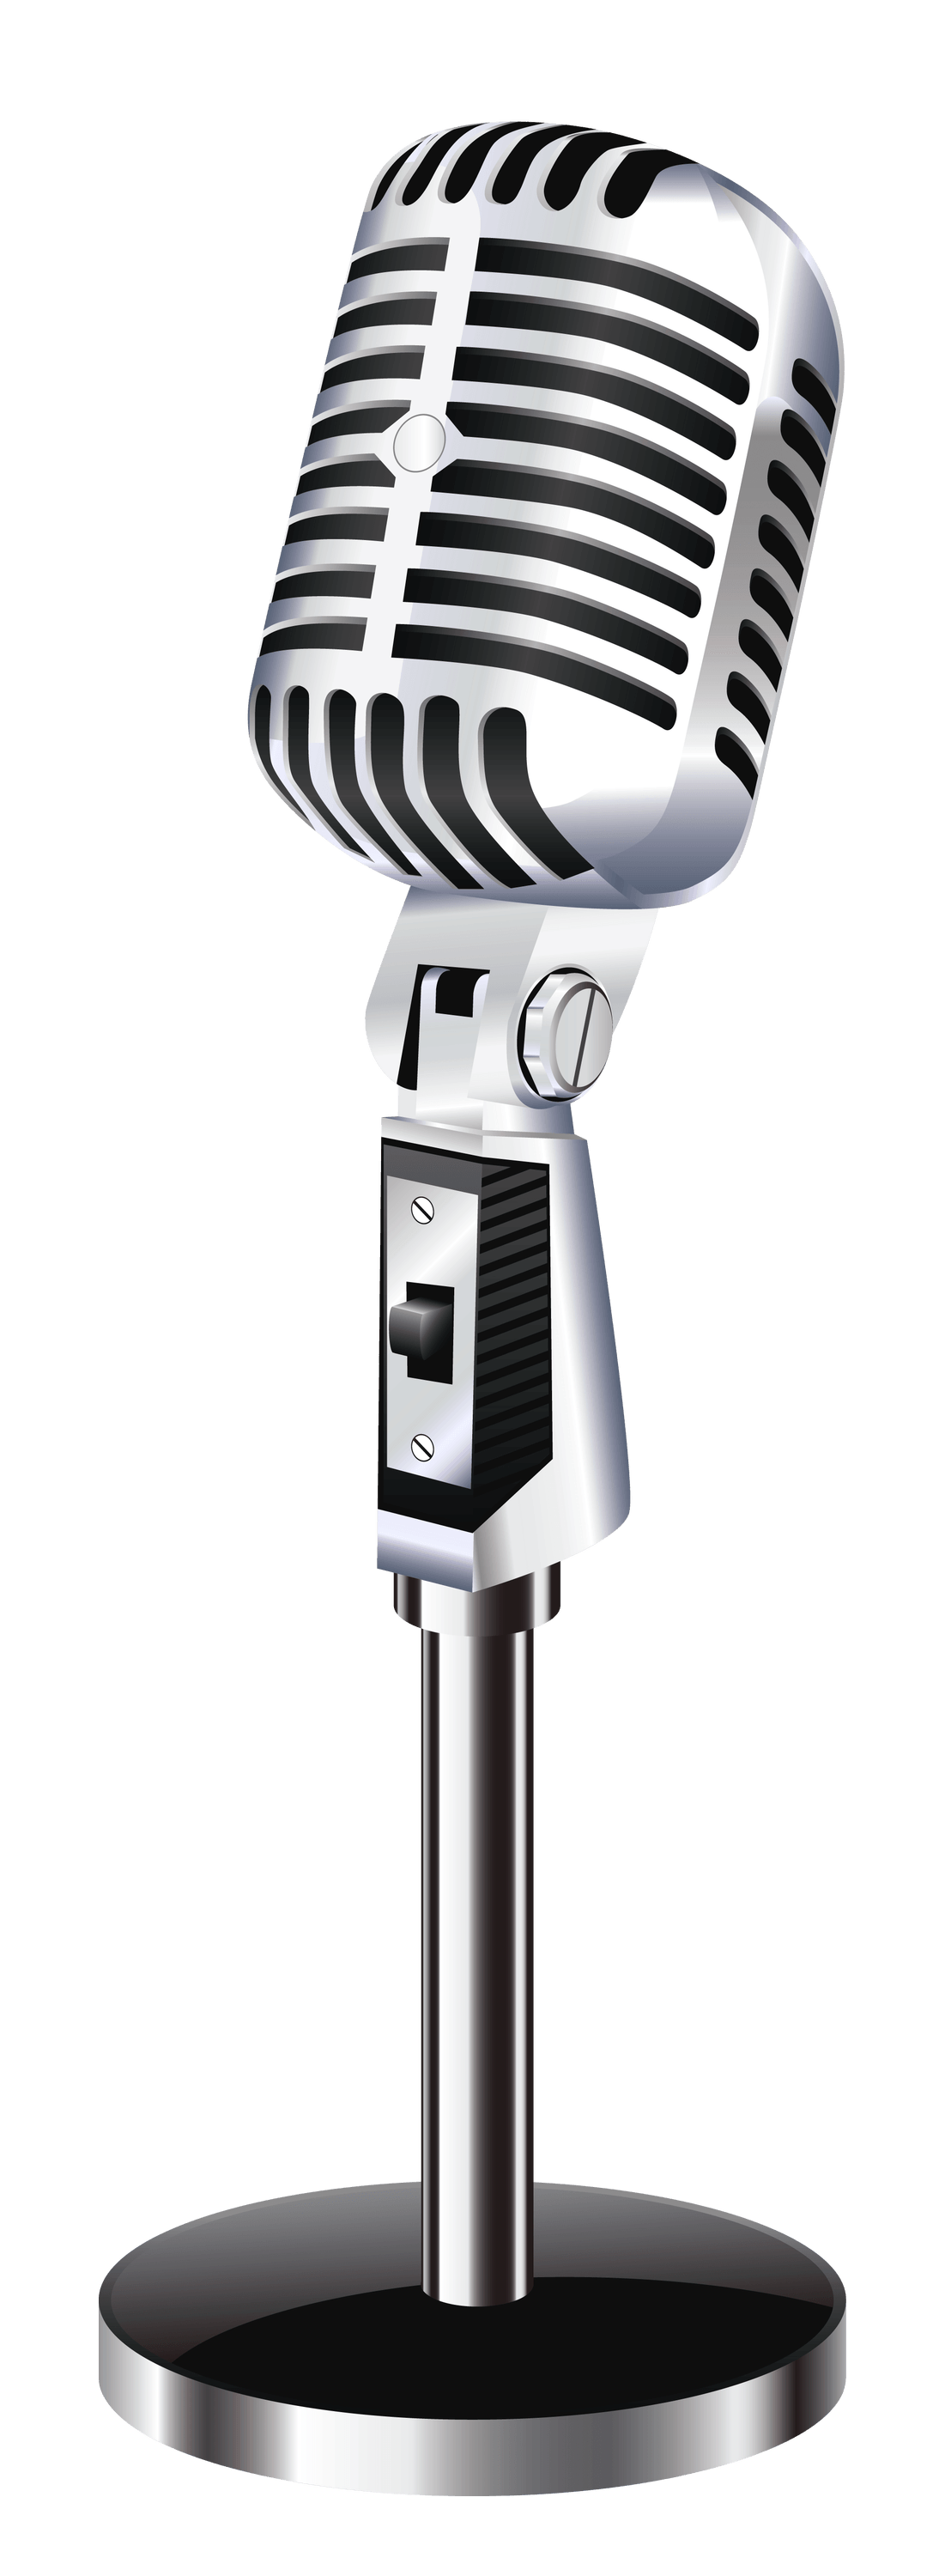 Vintage microphone transparent stick png 2